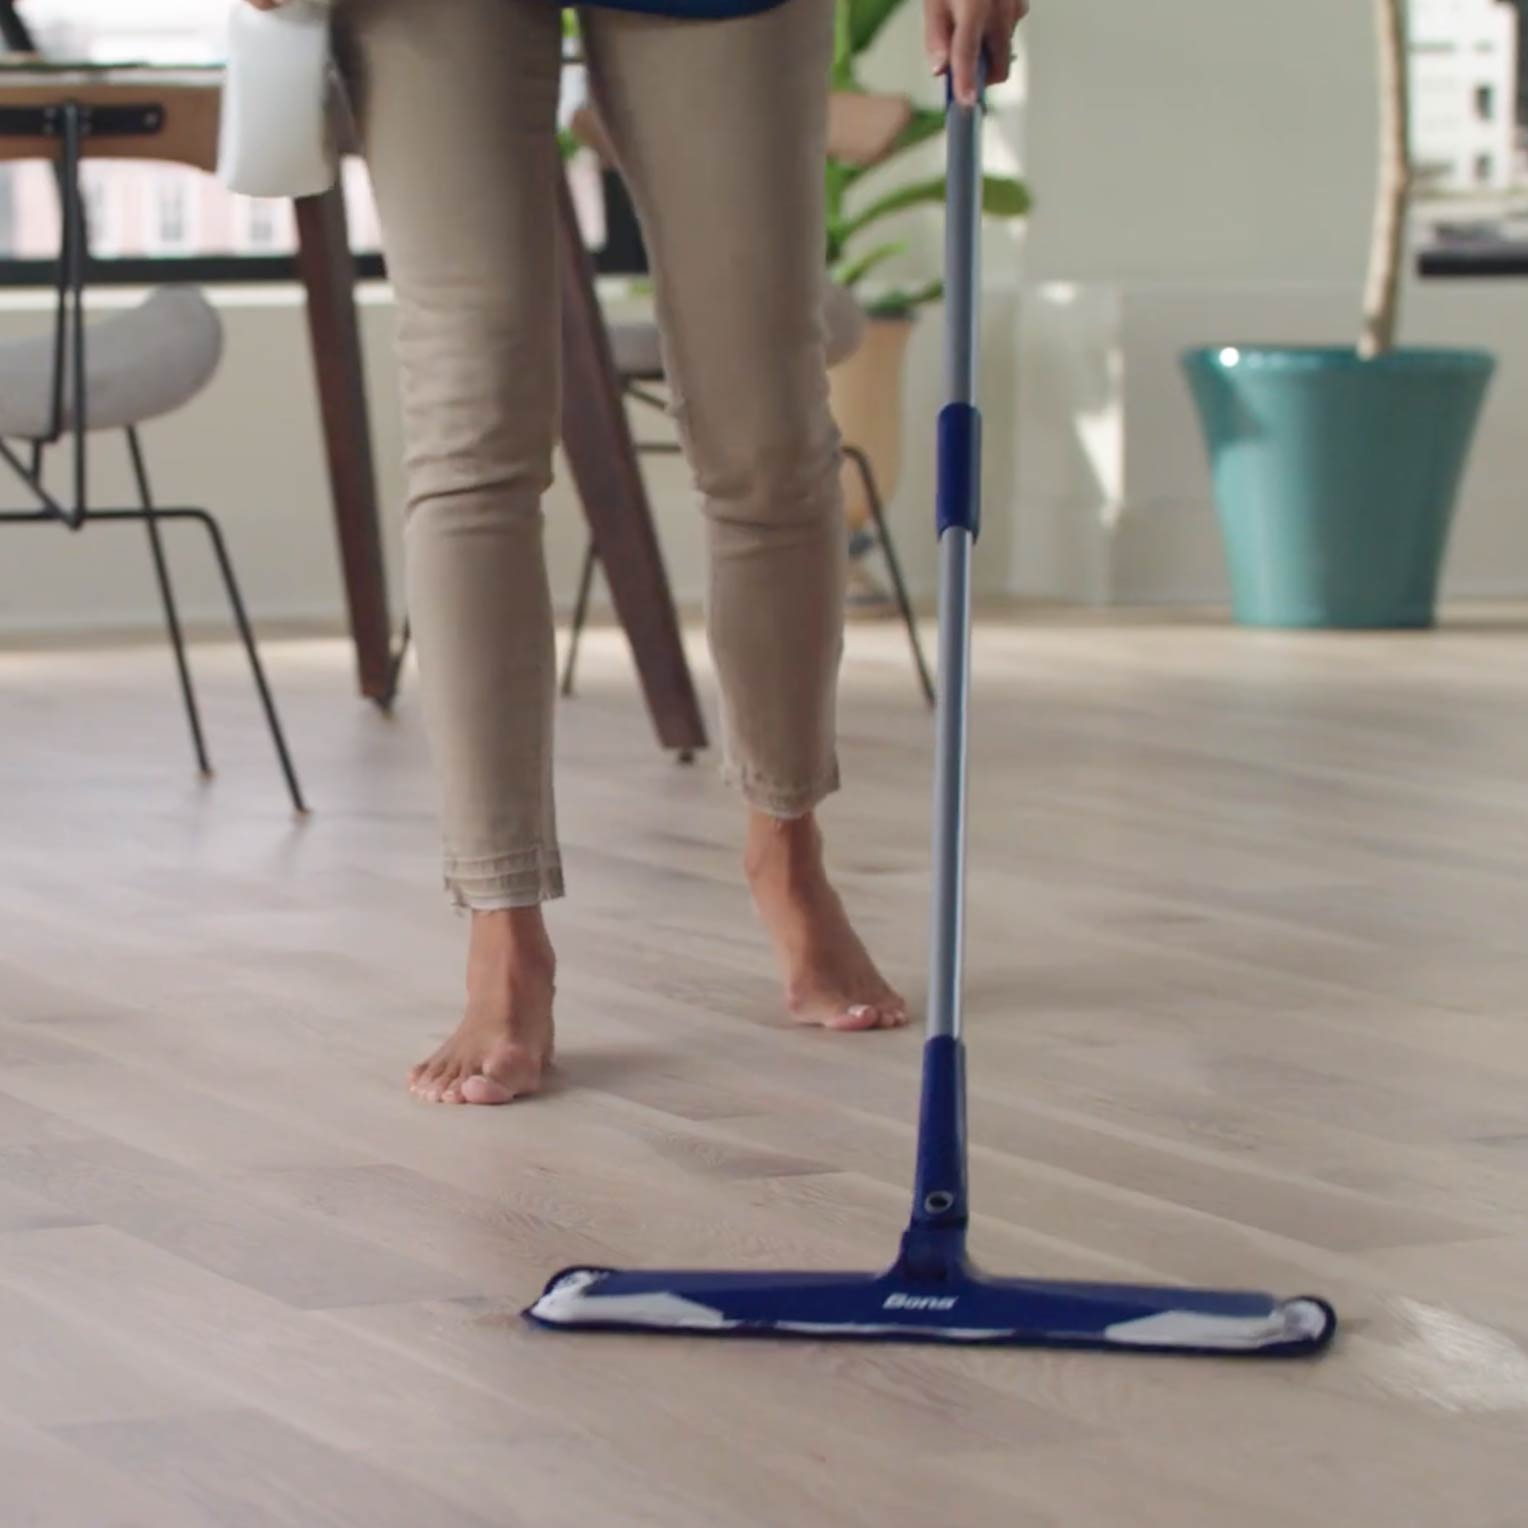 <p><strong>A microfiber mop paired with a natural hardwood floor cleaner is enough to care for wood floors.</strong> Using a mop with a machine washable, microfiber pad for dusting and cleaning is great way to save money. The electrostatic action of a microfiber pad attracts dirt, particles and common household allergens.</p><br/>